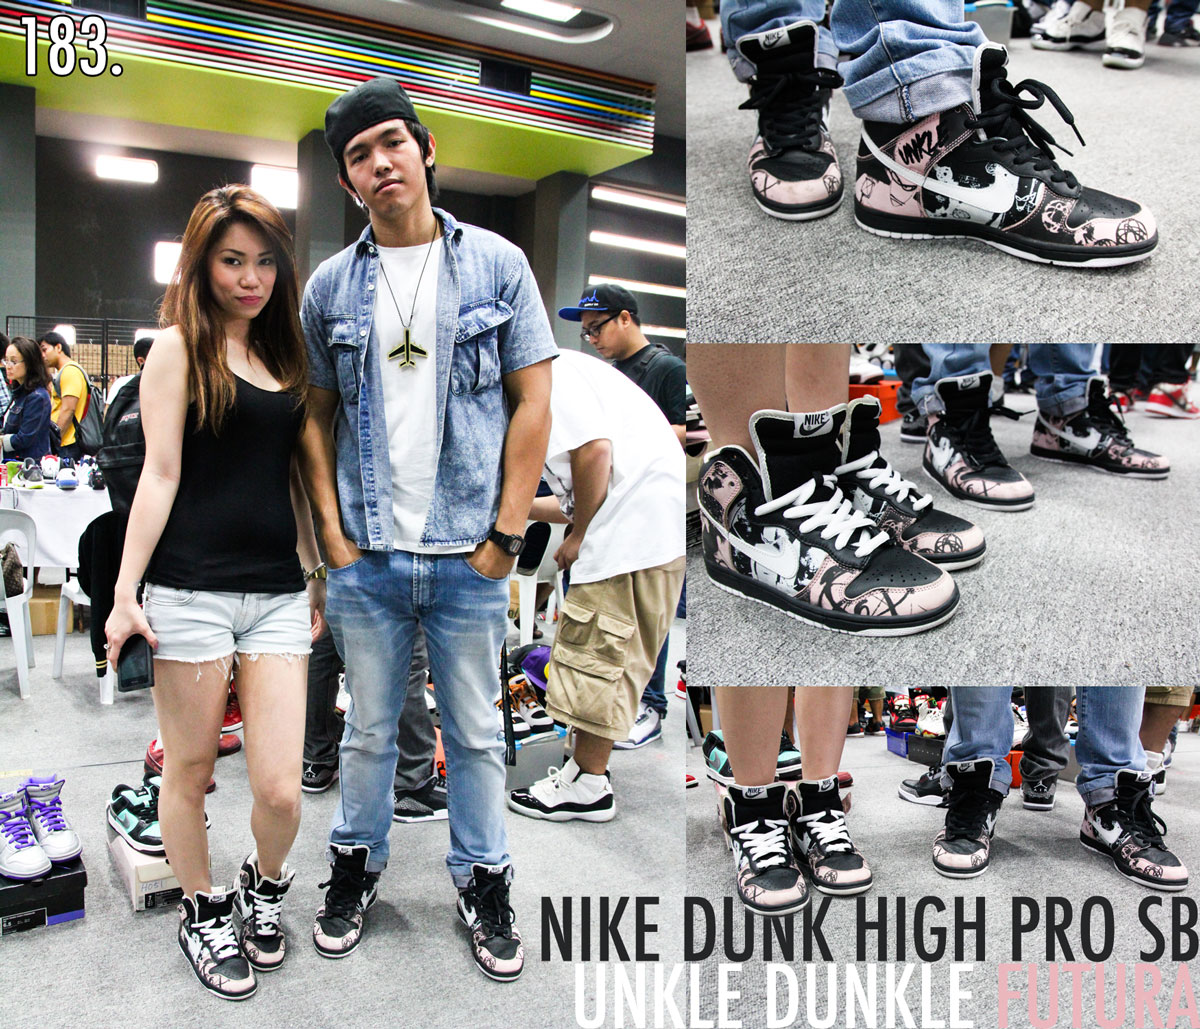 huge selection of ee9b4 5c939 Astron Sneaker Hunts: 183. Nike Dunk High Pro SB - Unkle ...